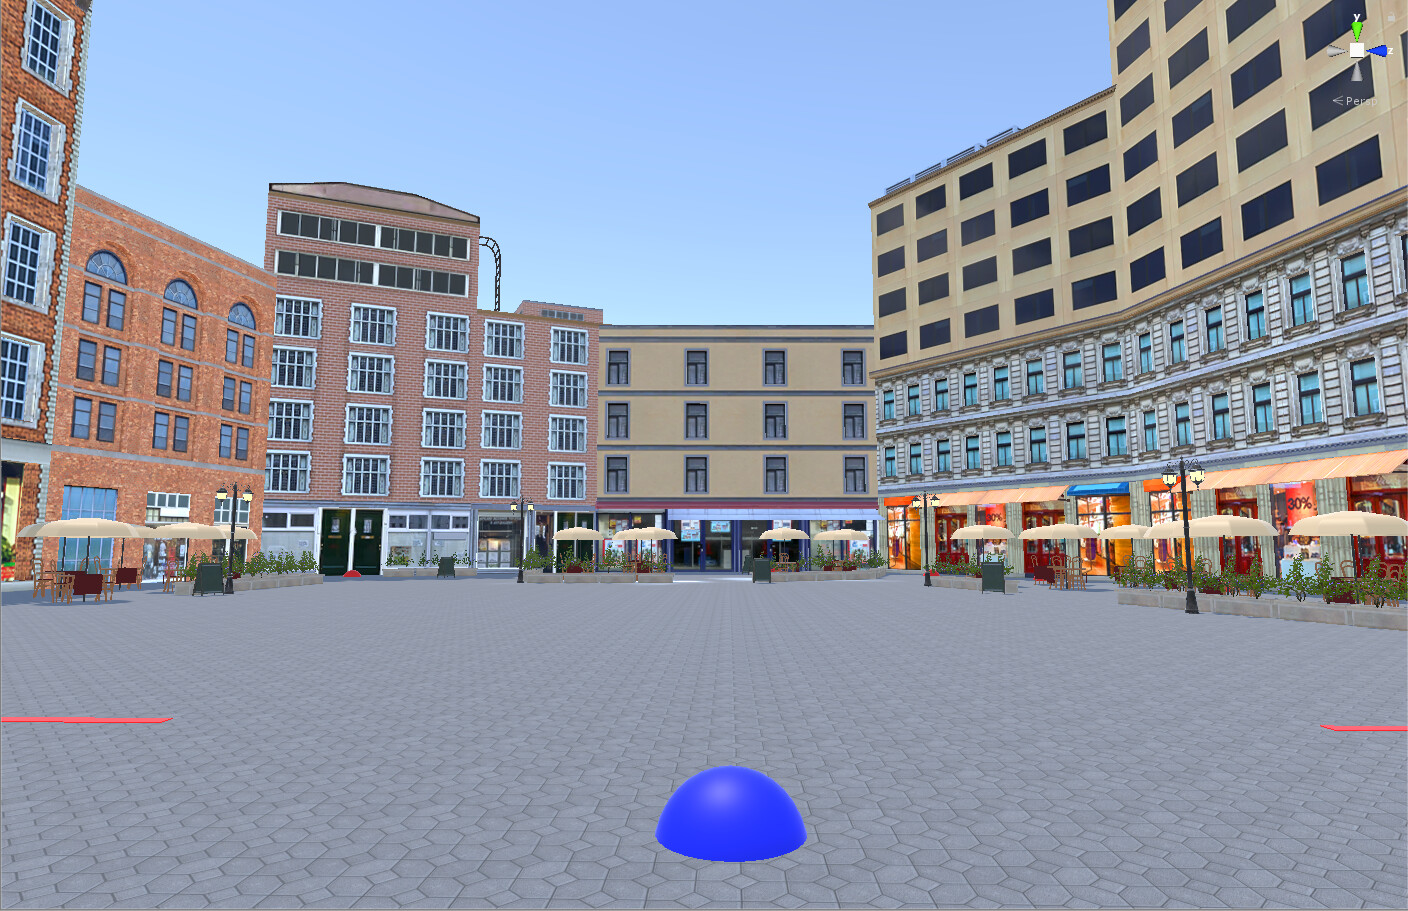 A plaza with debug